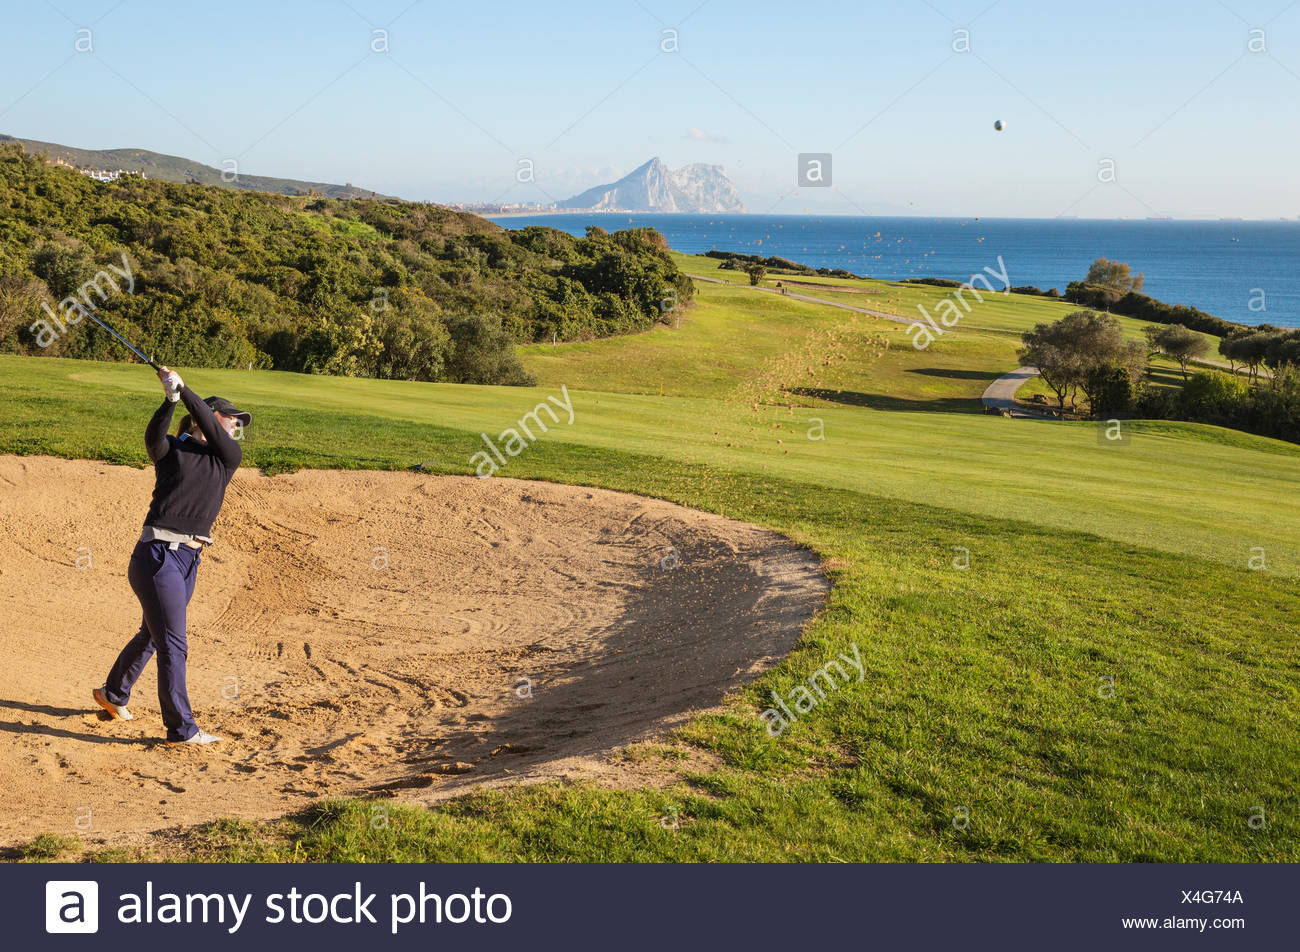 Golfer hitting from bunker at La Alcaidesa Golf Resort with Mediterranean Sea and Rock of Gibraltar, Cádiz, Andalusia, Spain - Stock Image